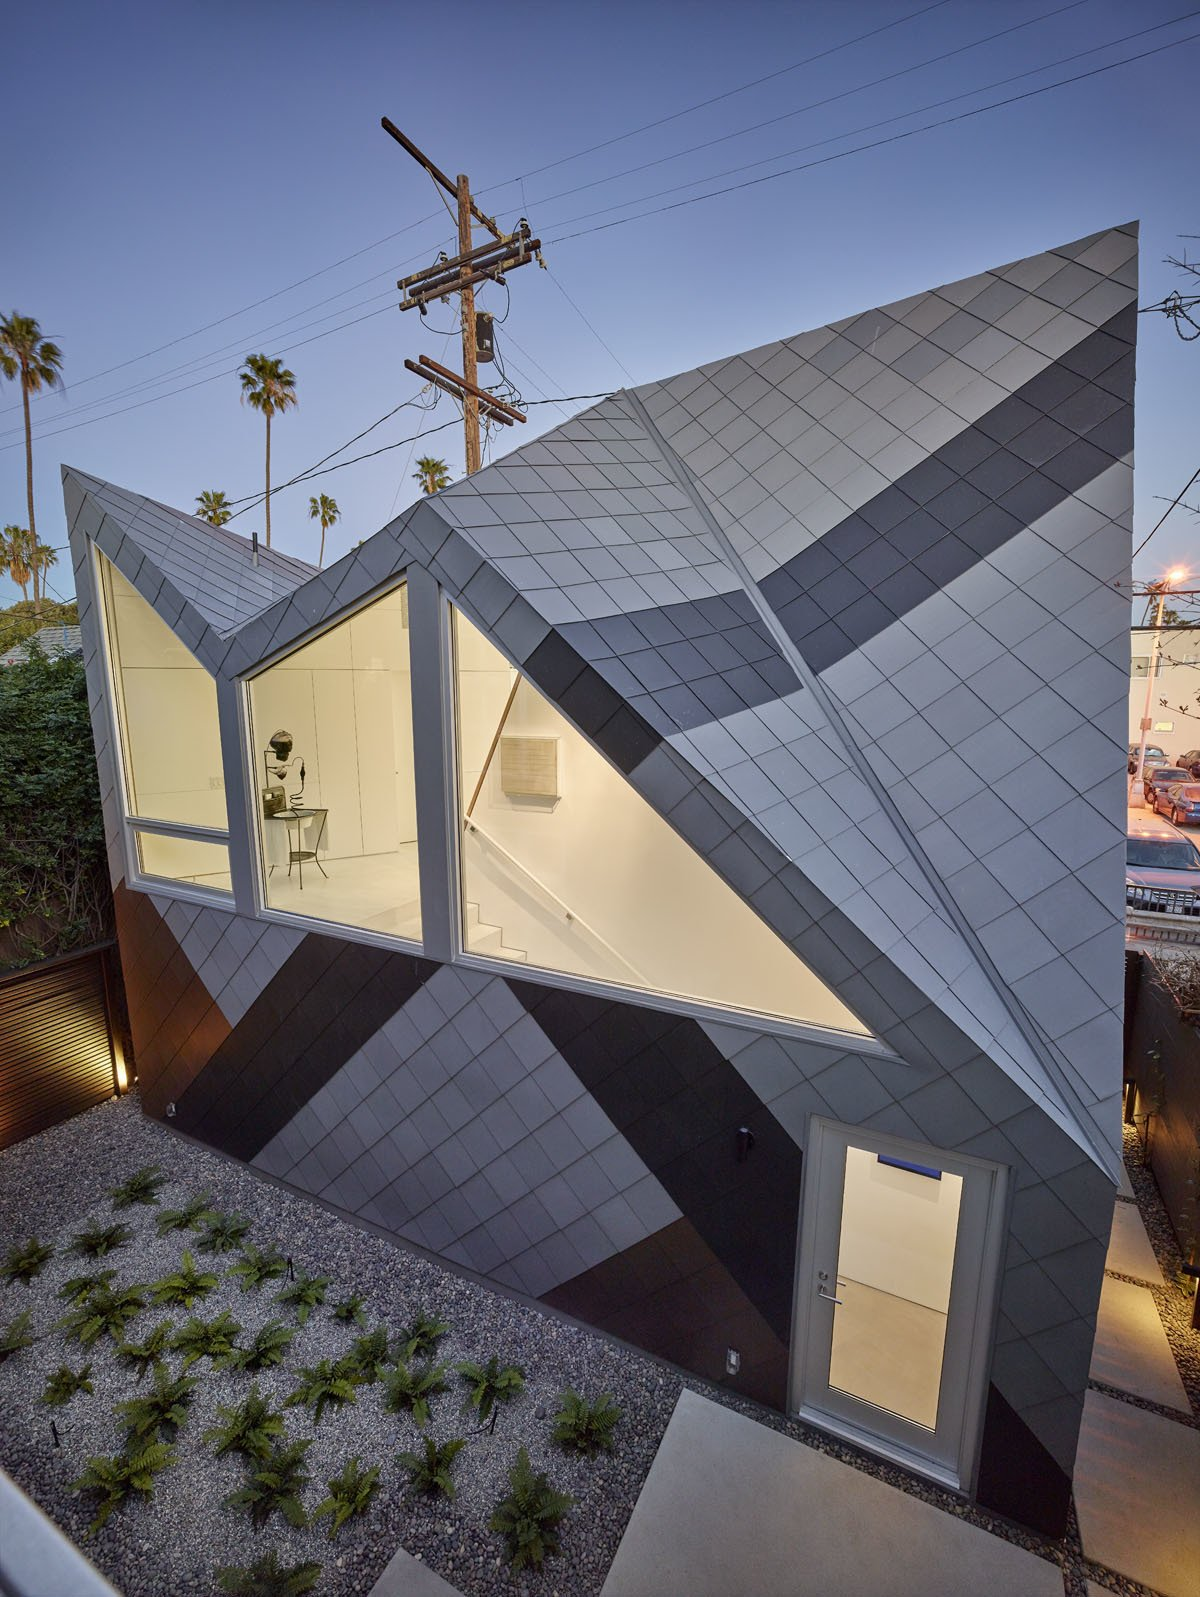 """Concerned that studio was too big compared to other homes in the neighborhood, the 1,060 square-foot structure references the dazzle pattern, a camouflage technique used by WWII battleships. Monti was inspired by the way the pattern  All the """"Right"""" Angles from This Entertaining Guesthouse and Studio Will Inspire You to Start Making Art"""